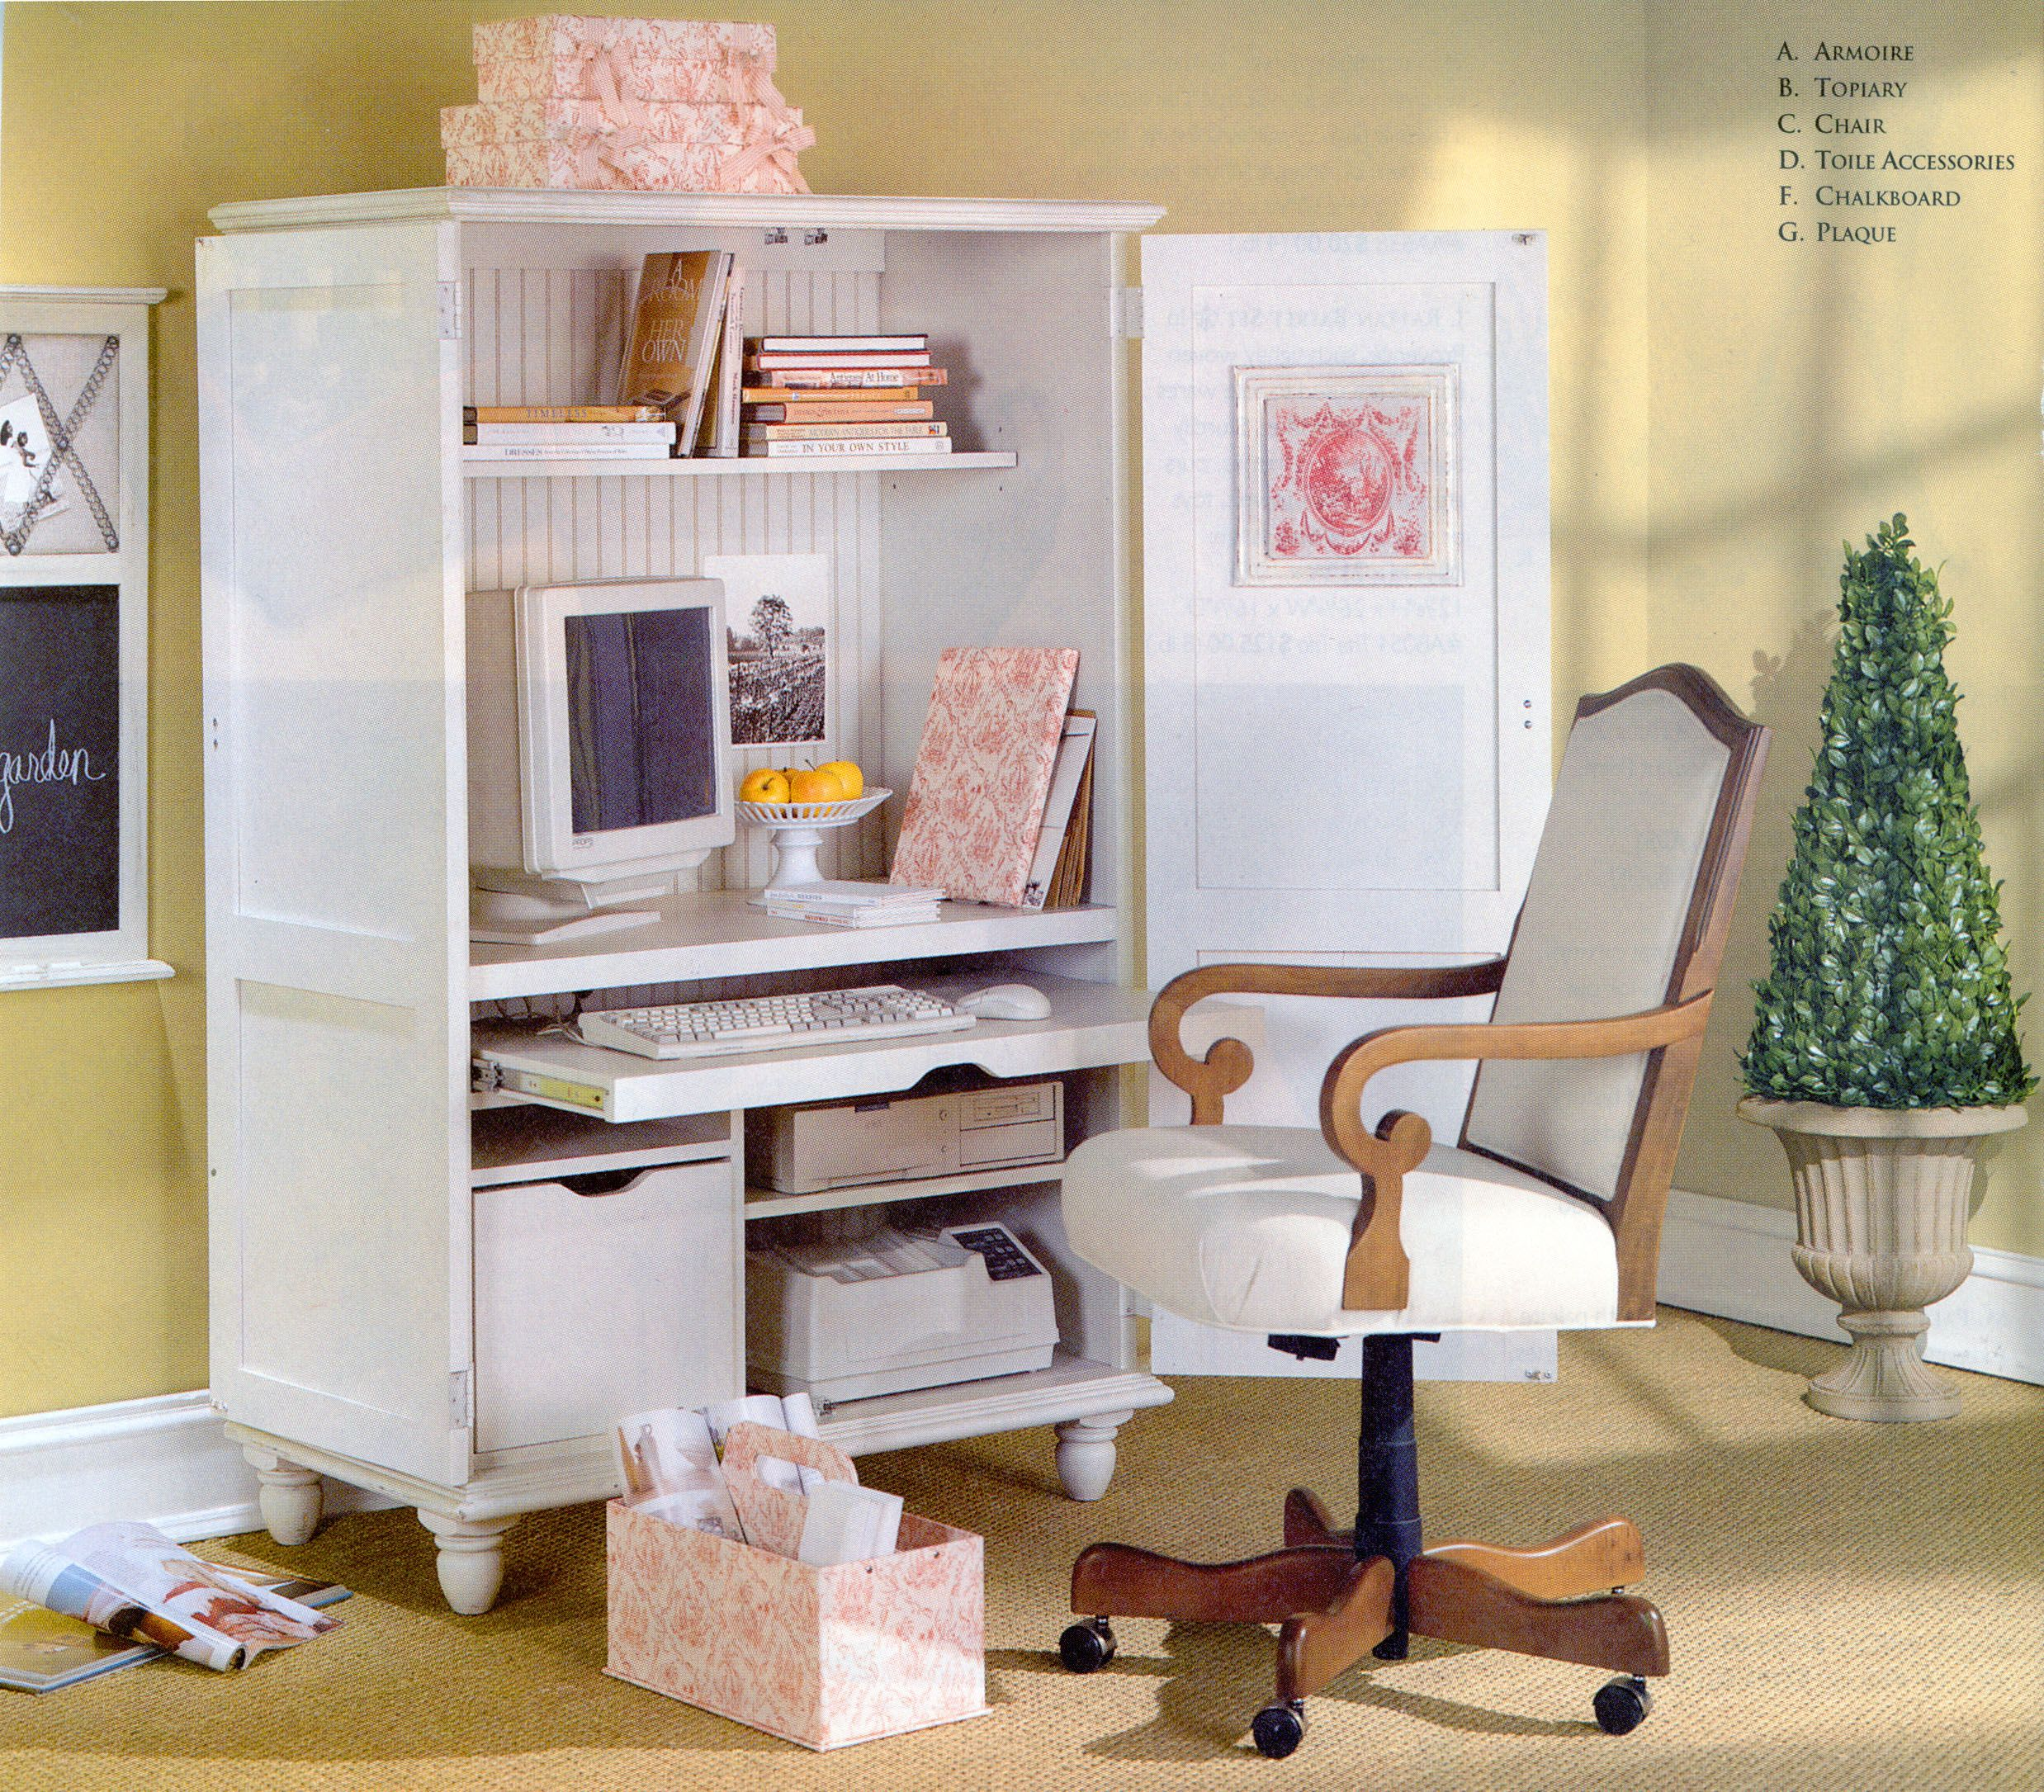 Ballard designs home office armoire for the home pinterest - Ballard design home office ...